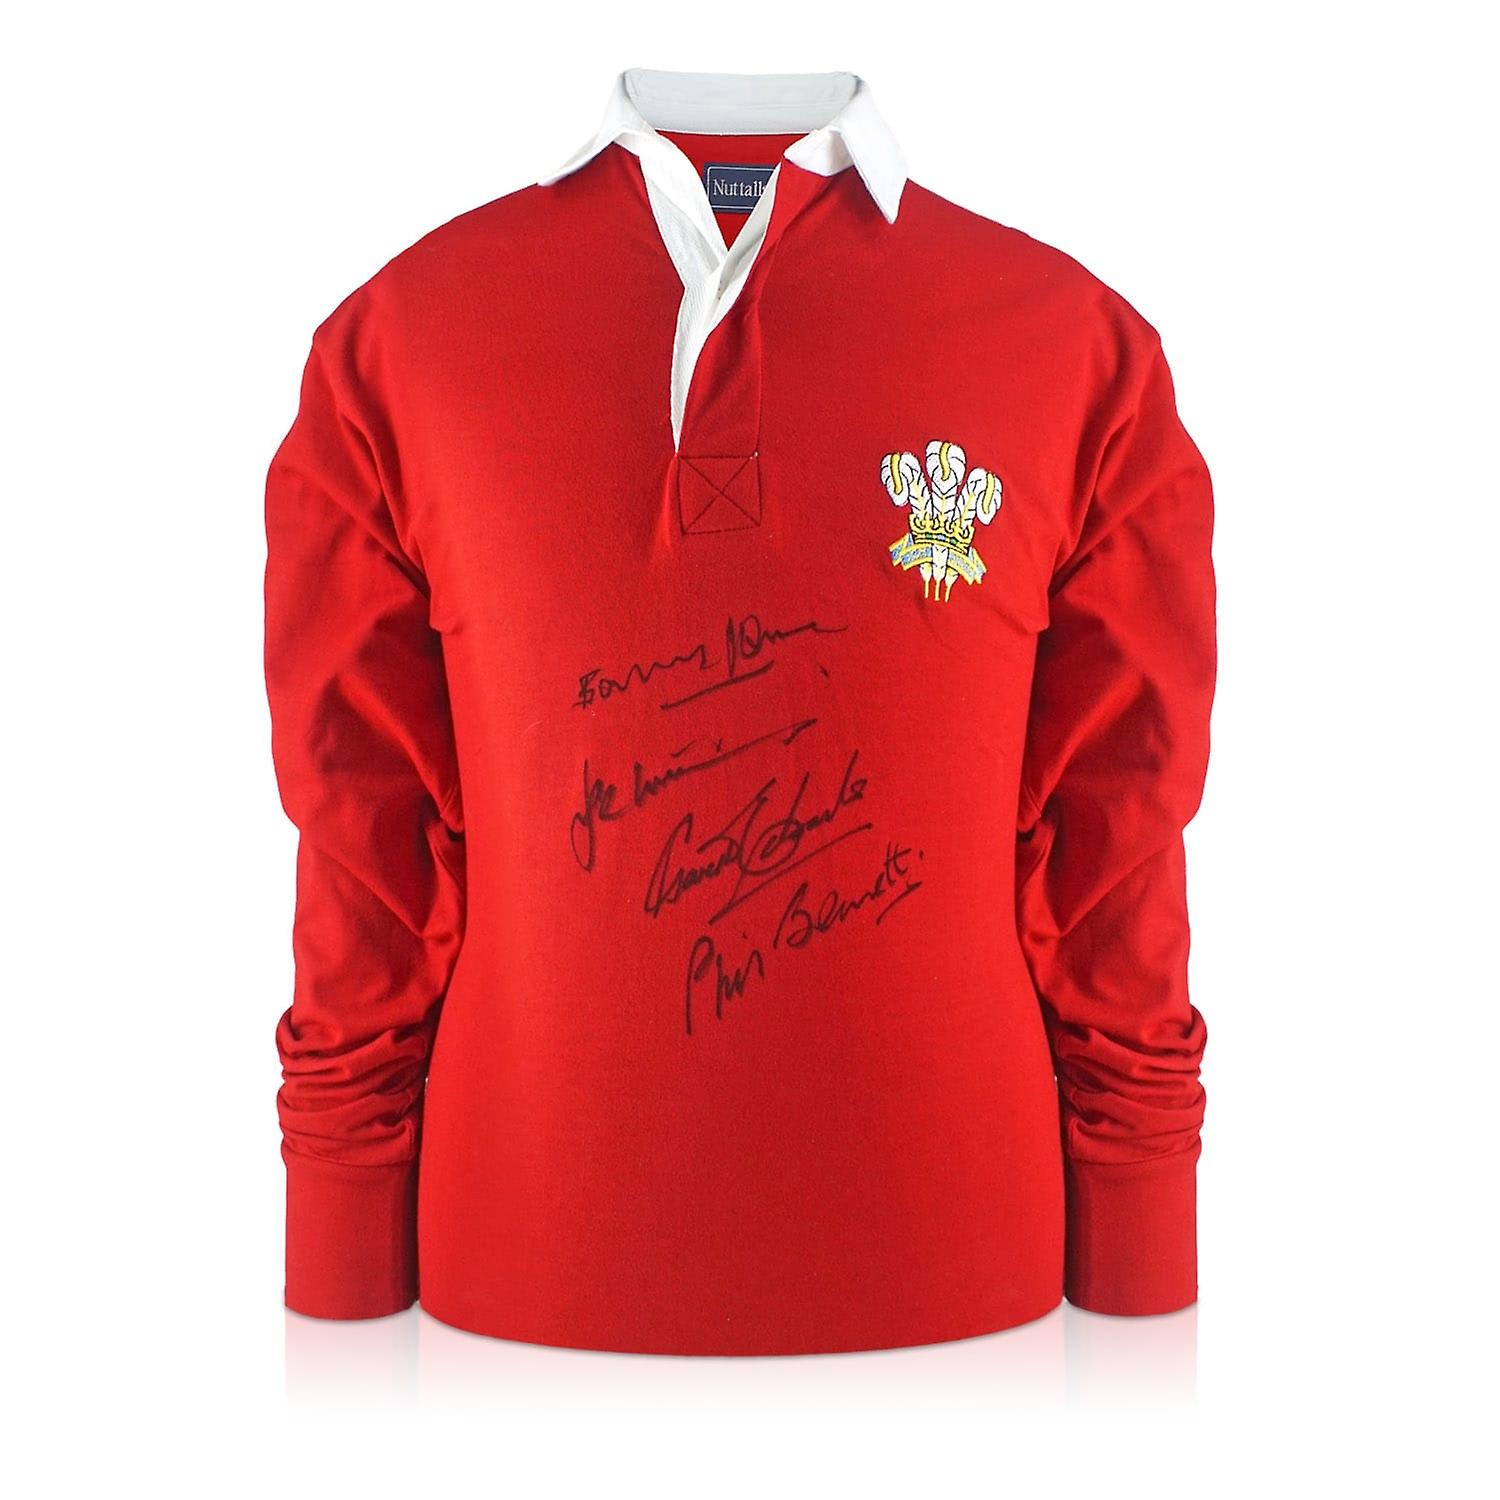 Wales Rugby Shirt Signed By Gareth Edwards, JPR Williams, Phil Bennett And Barry John